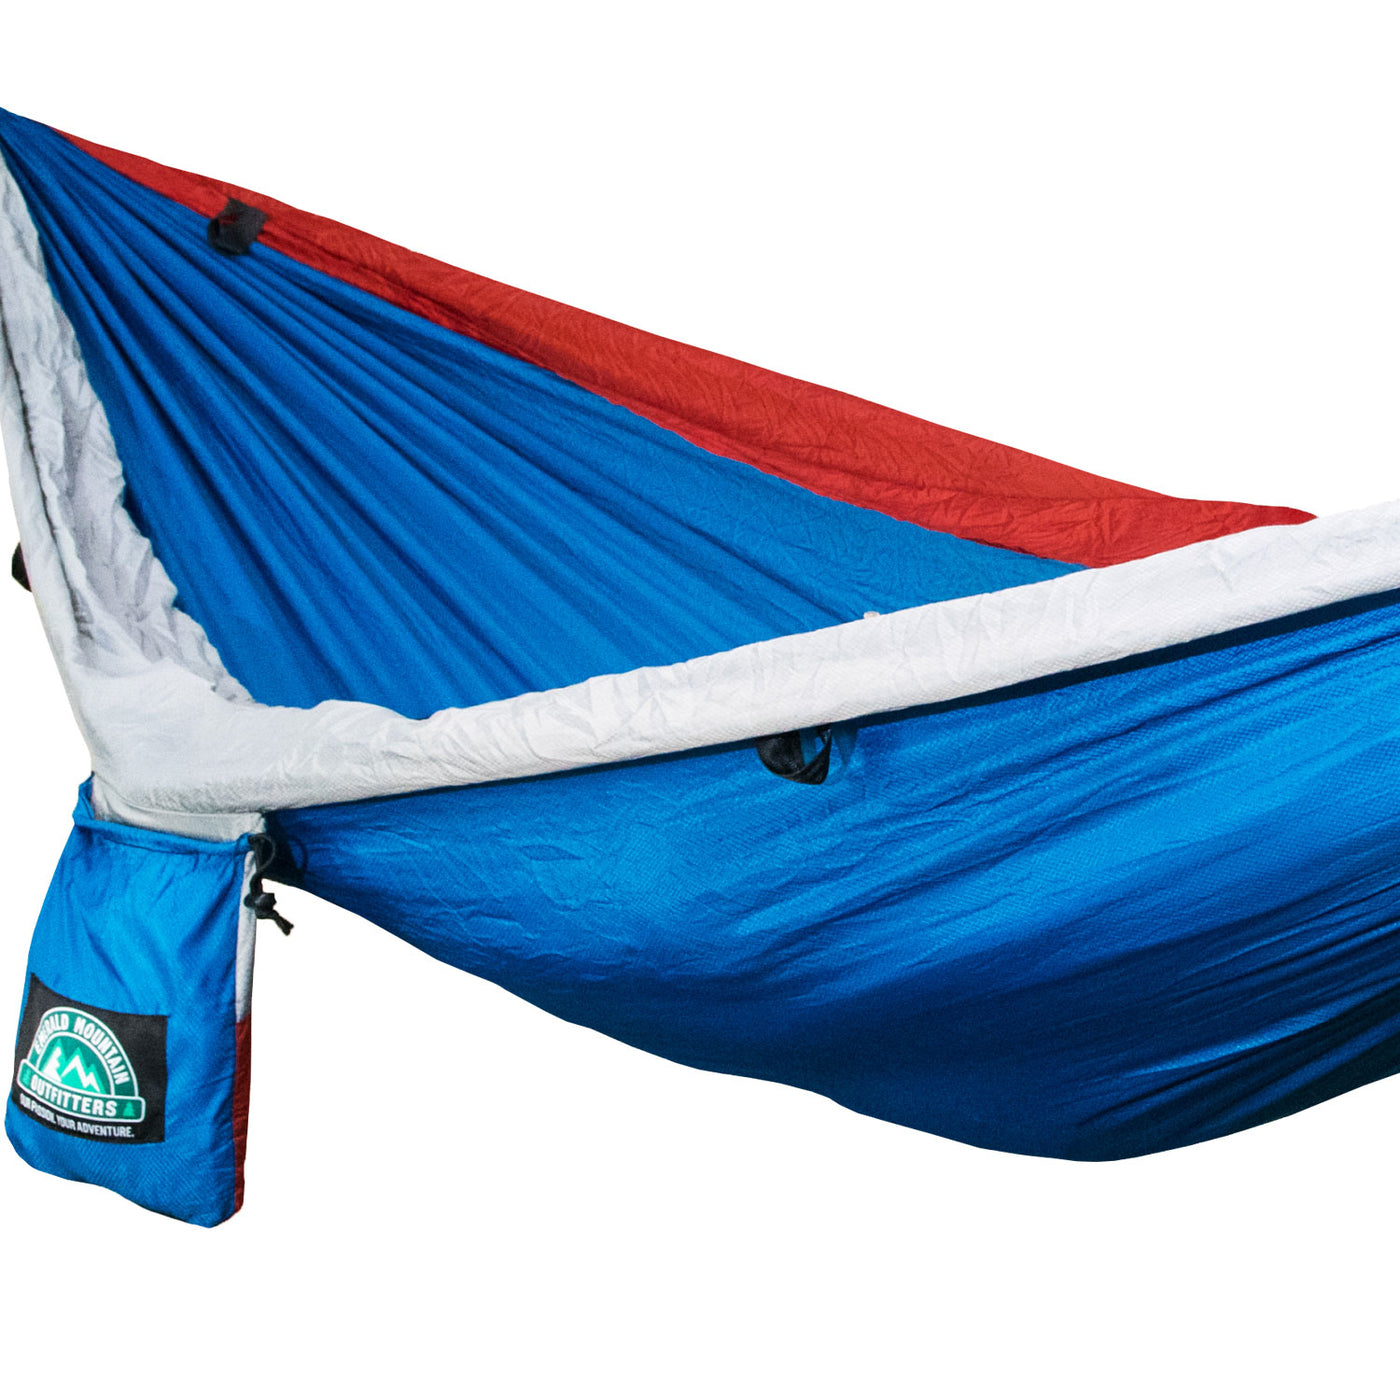 Emerald Mountain Camping Hammock